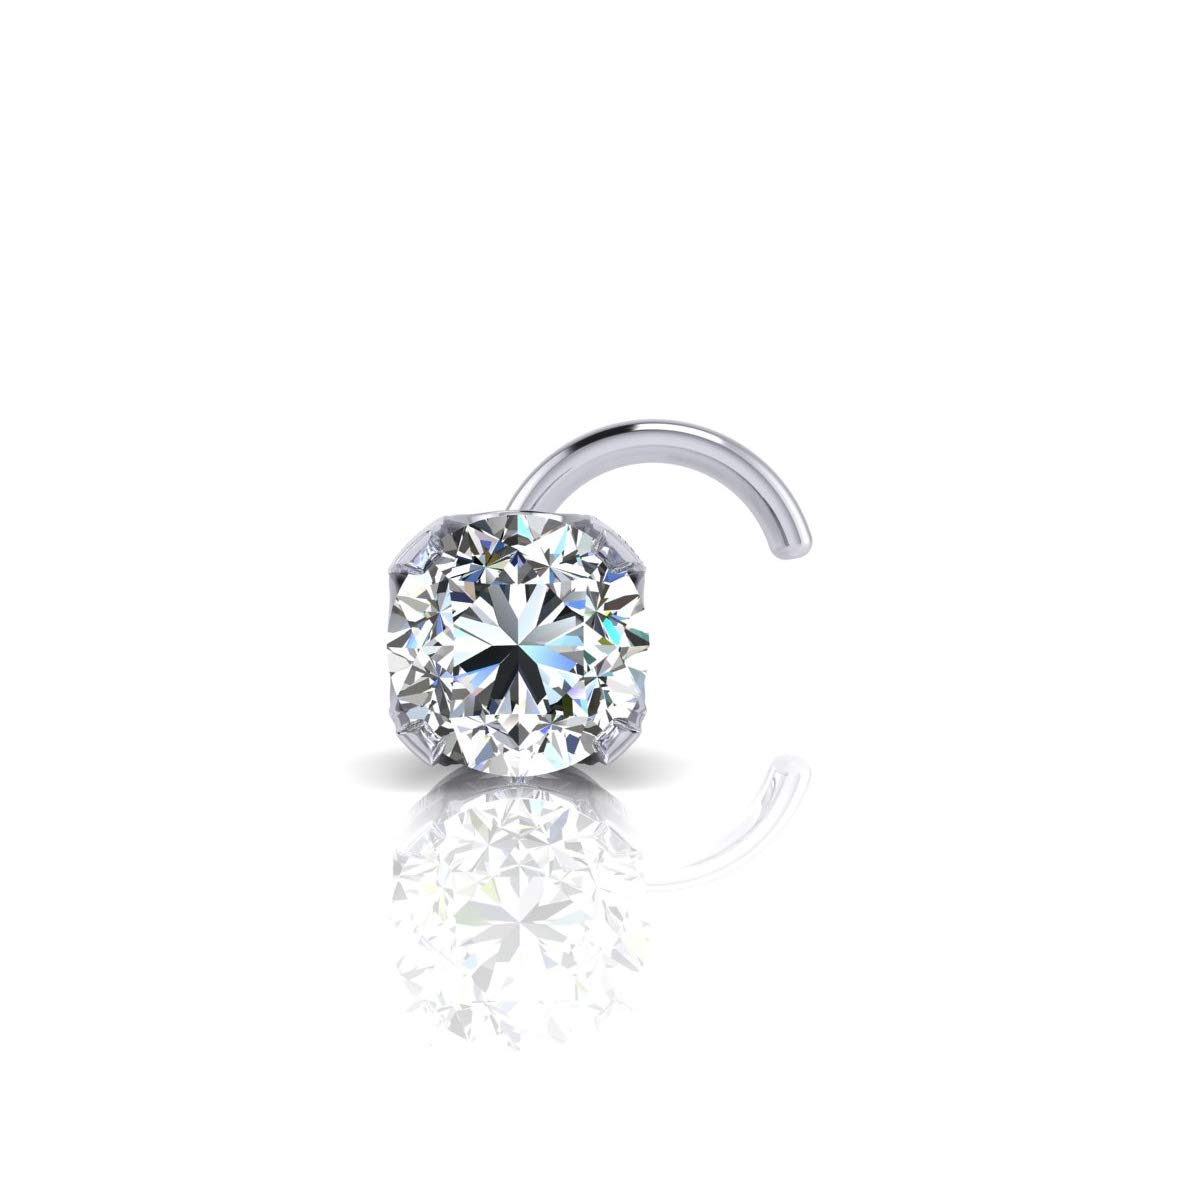 1.5mm 0.015 Carat Diamond Stud Nose Ring In 14K White Gold by Sparkle Bargains